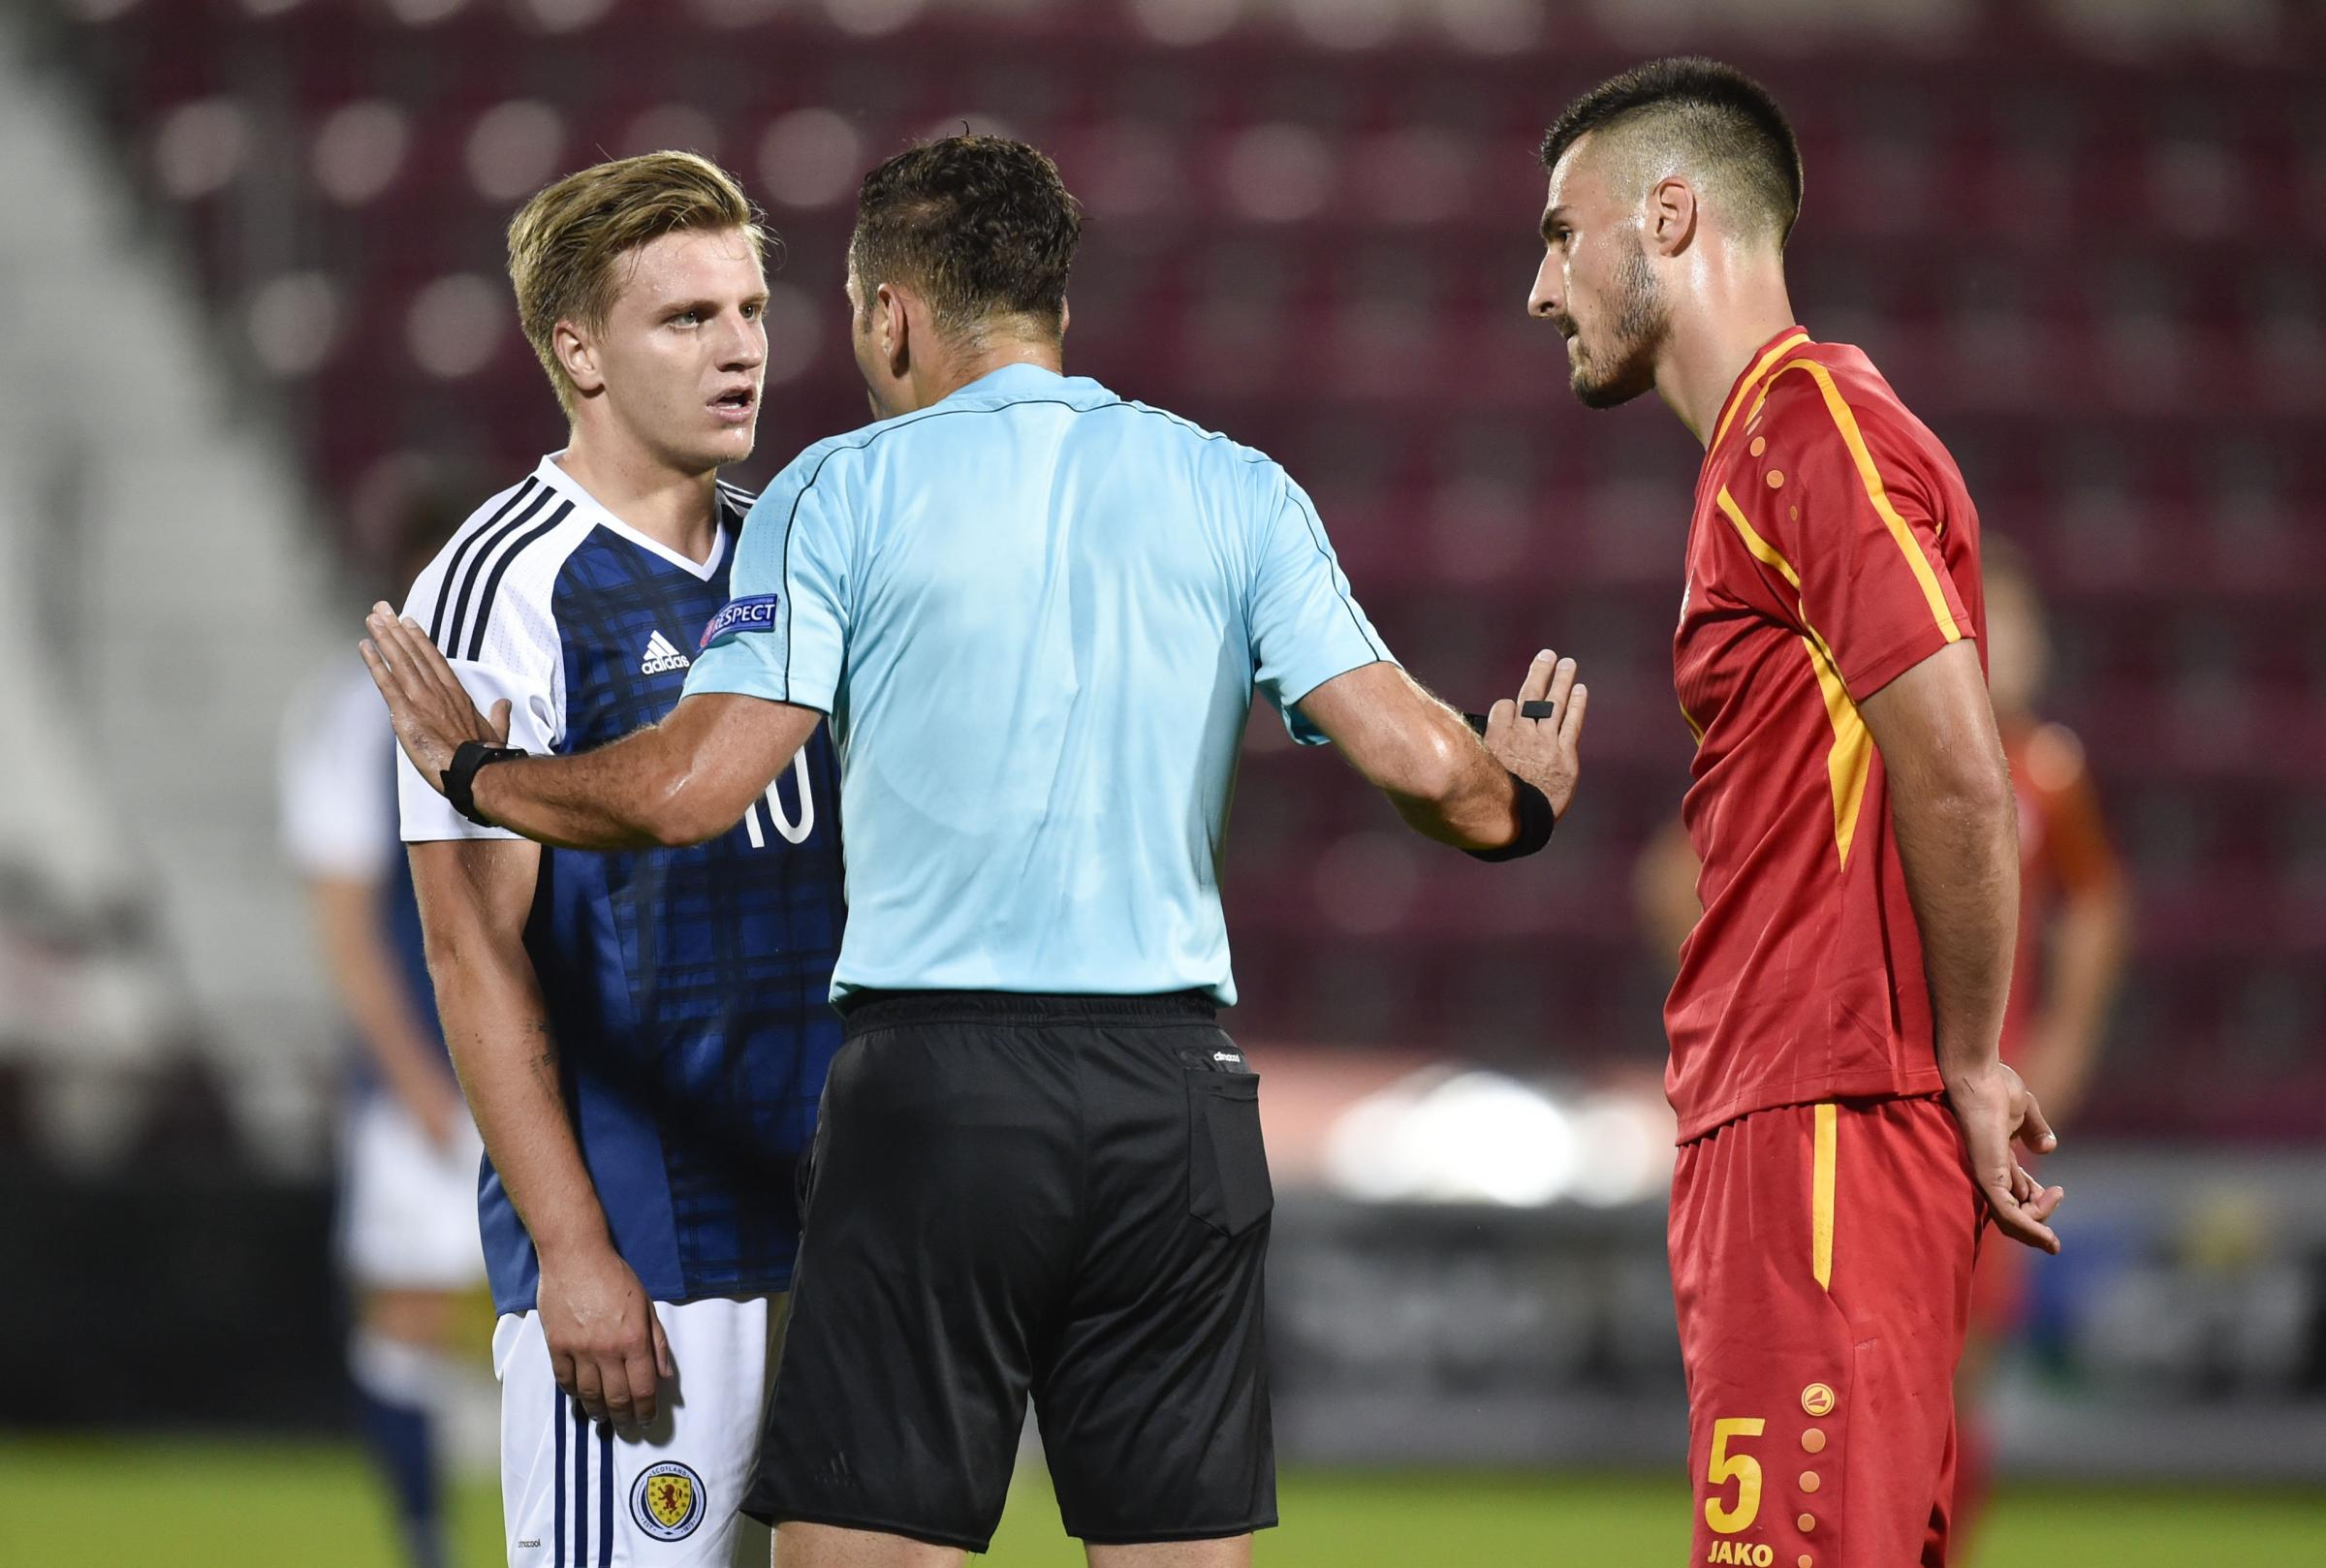 02/09/16 UEFA EUROPEAN U21 CHAMPIONSHIPS QUALIFIER .  SCOTLAND U21 v MACEDONIA U21 .  TYNECASTLE - EDINBURGH .  Scotland's Jason Cummings (left) is spoken to by the referee.